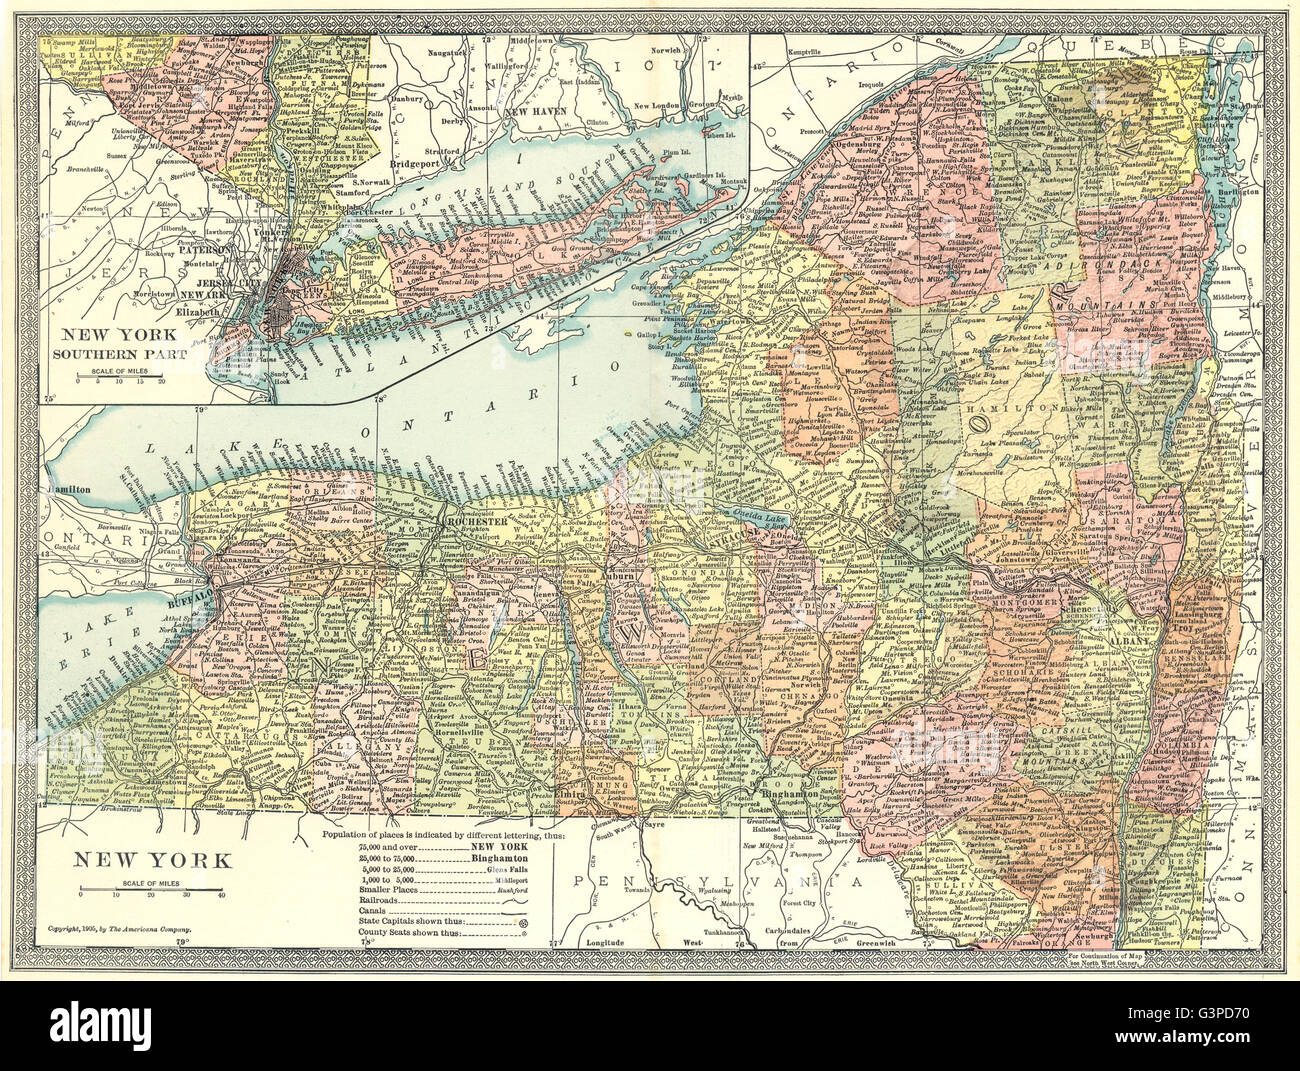 NEW YORK STATE map. Counties, 1907 Stock Photo: 105599508 - Alamy